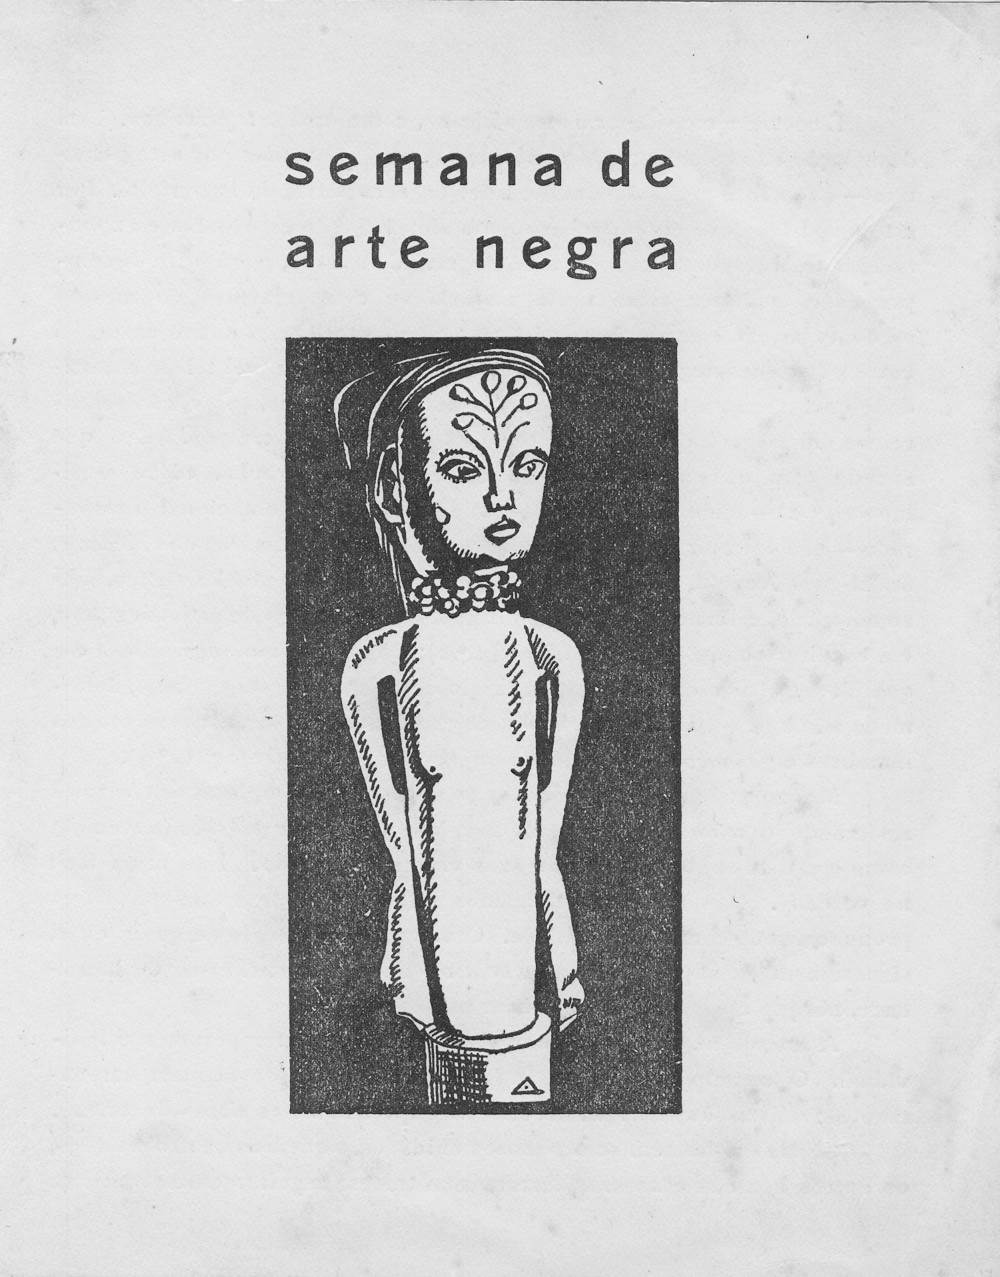 Cover of the booklet of the Black Art Week exhibiton, 1946.